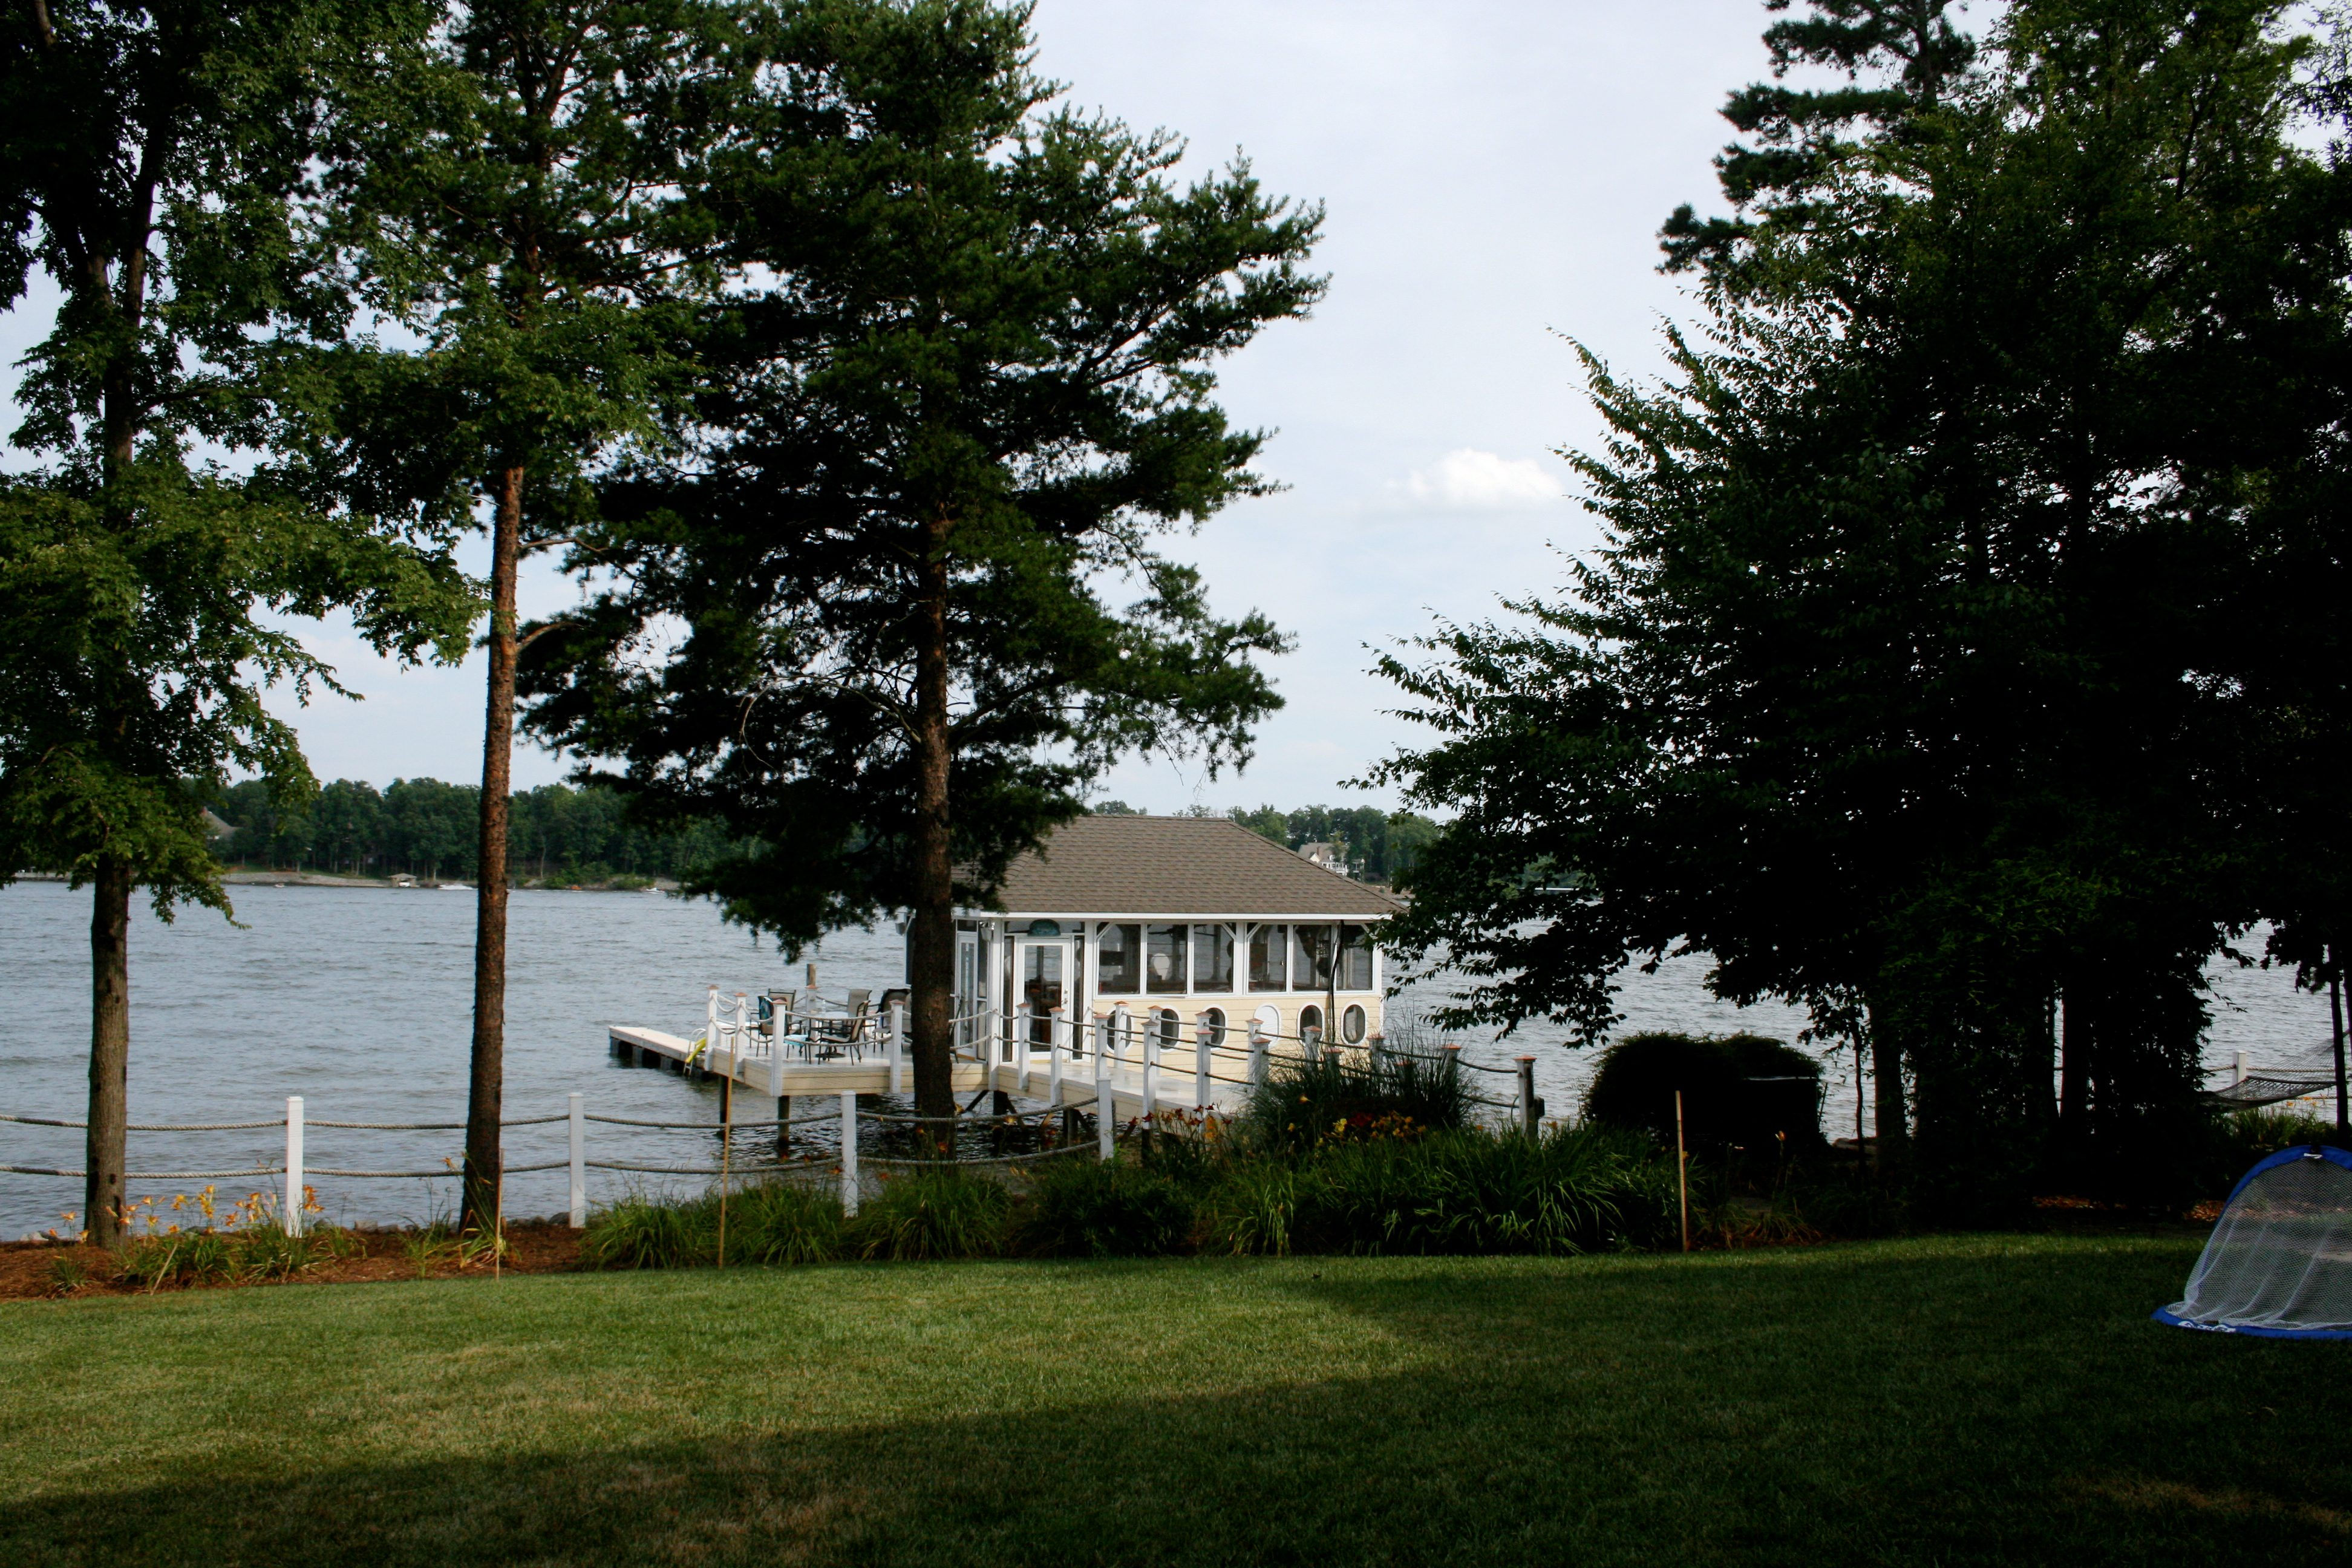 Lake Norman Rental Home with Boathouse Bar